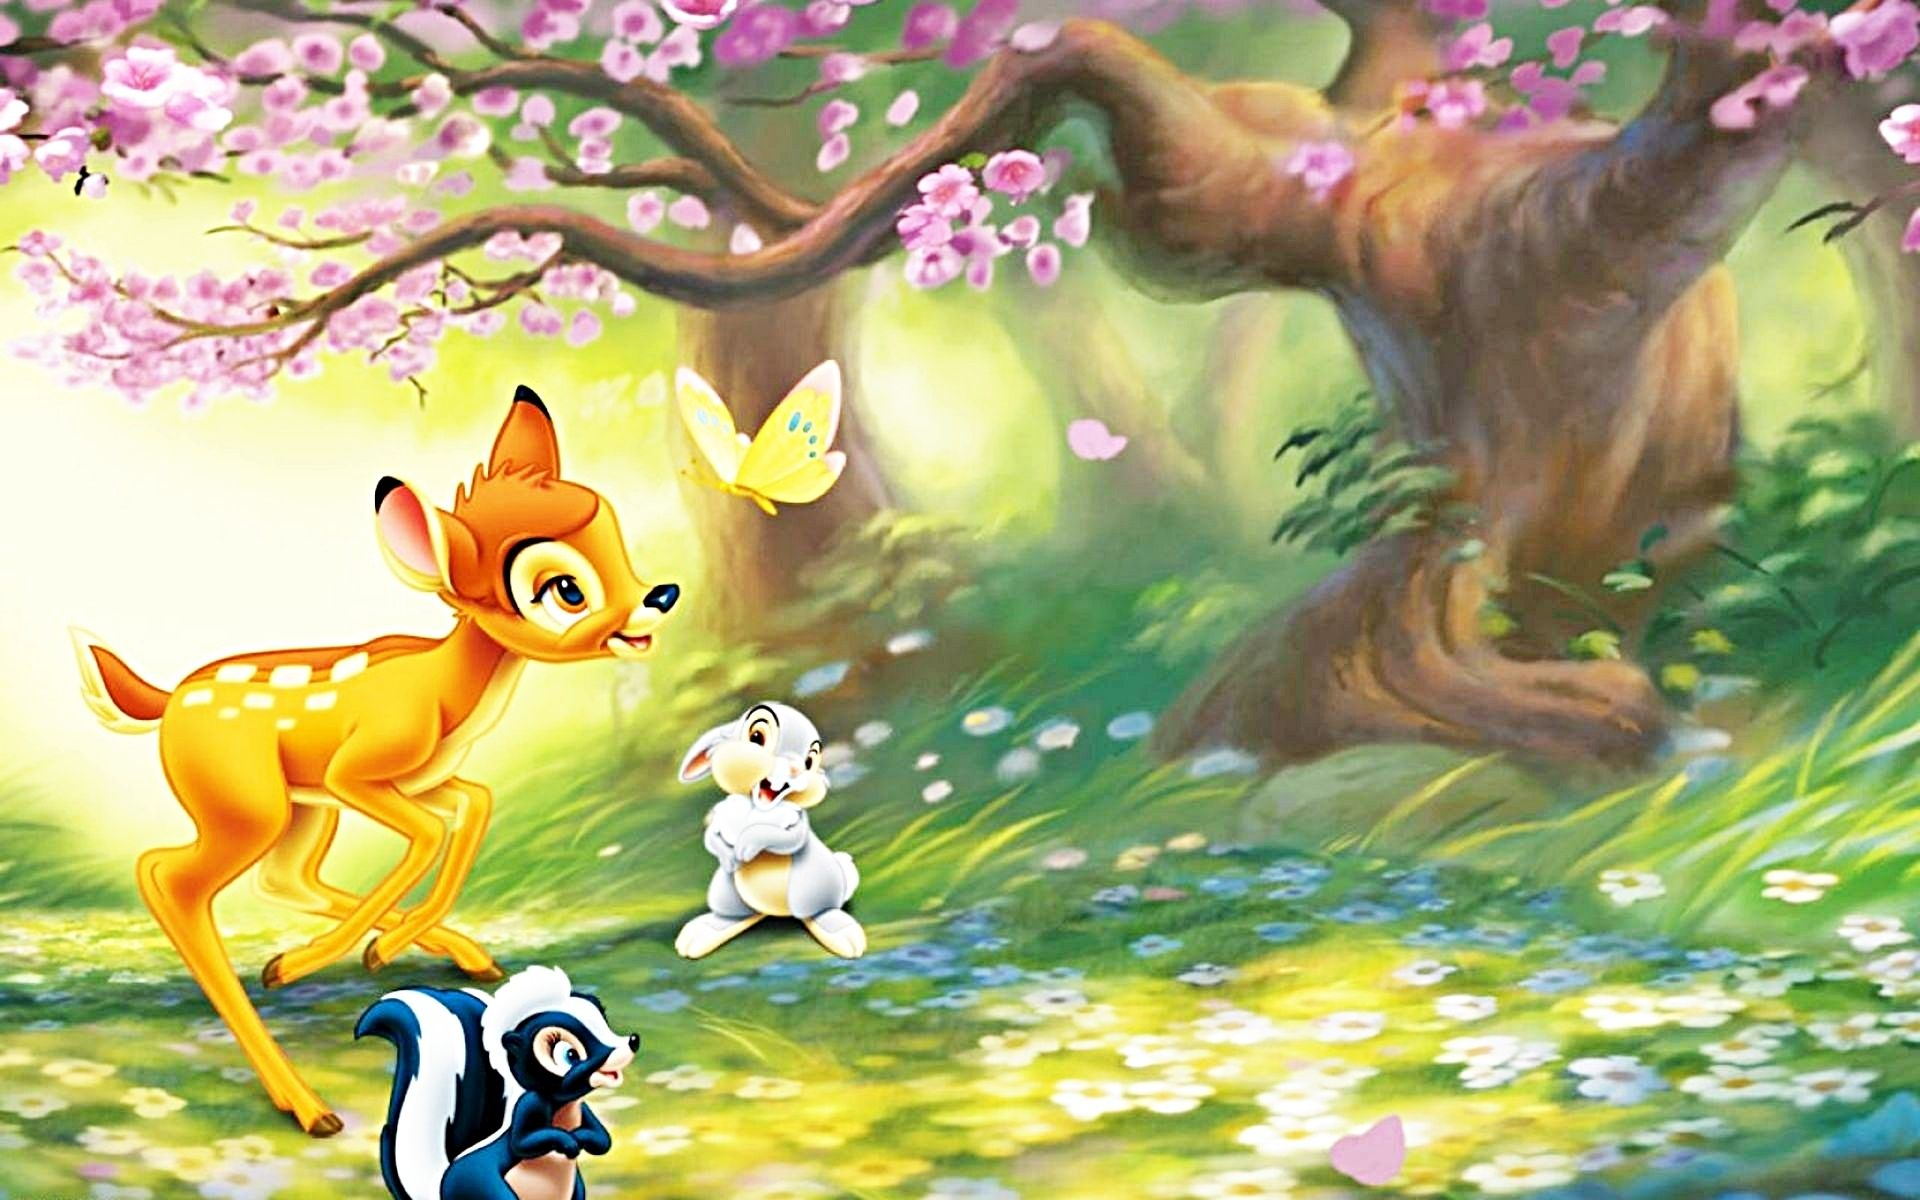 download the walt disney bambi cartoon hd wallpaper for android and rh pinterest com